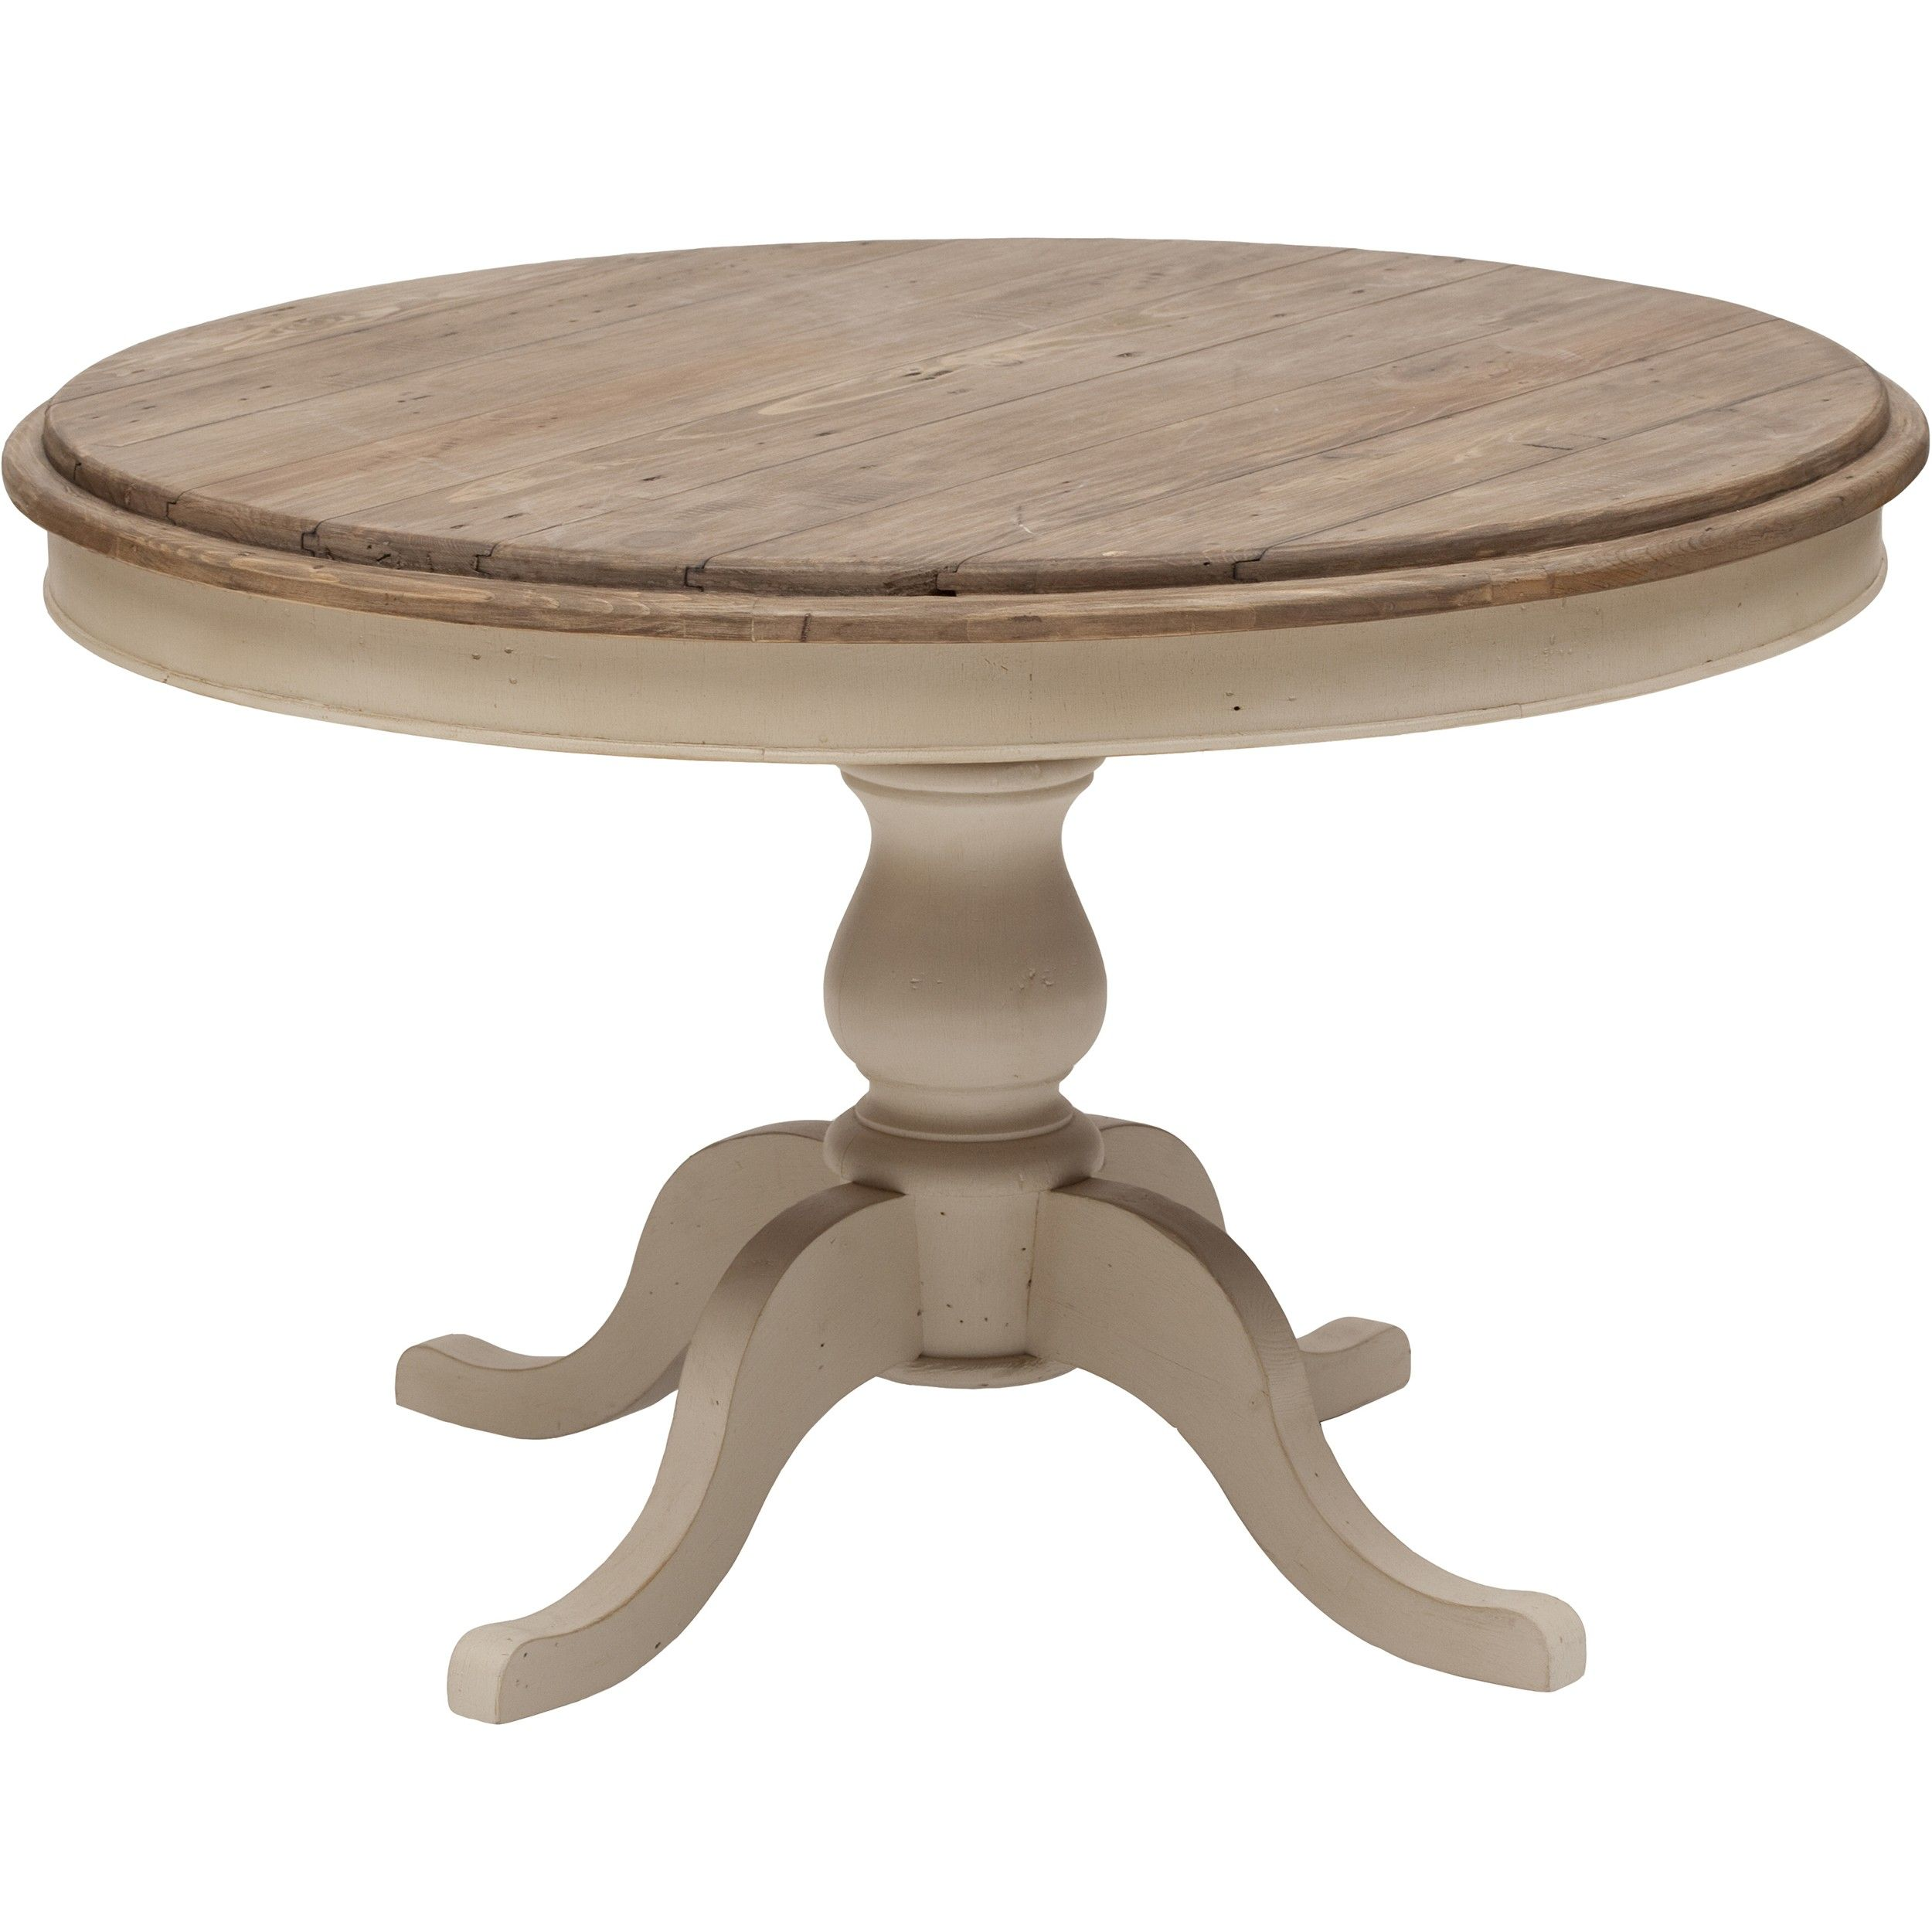 Cornwall Round Dining Table 47\